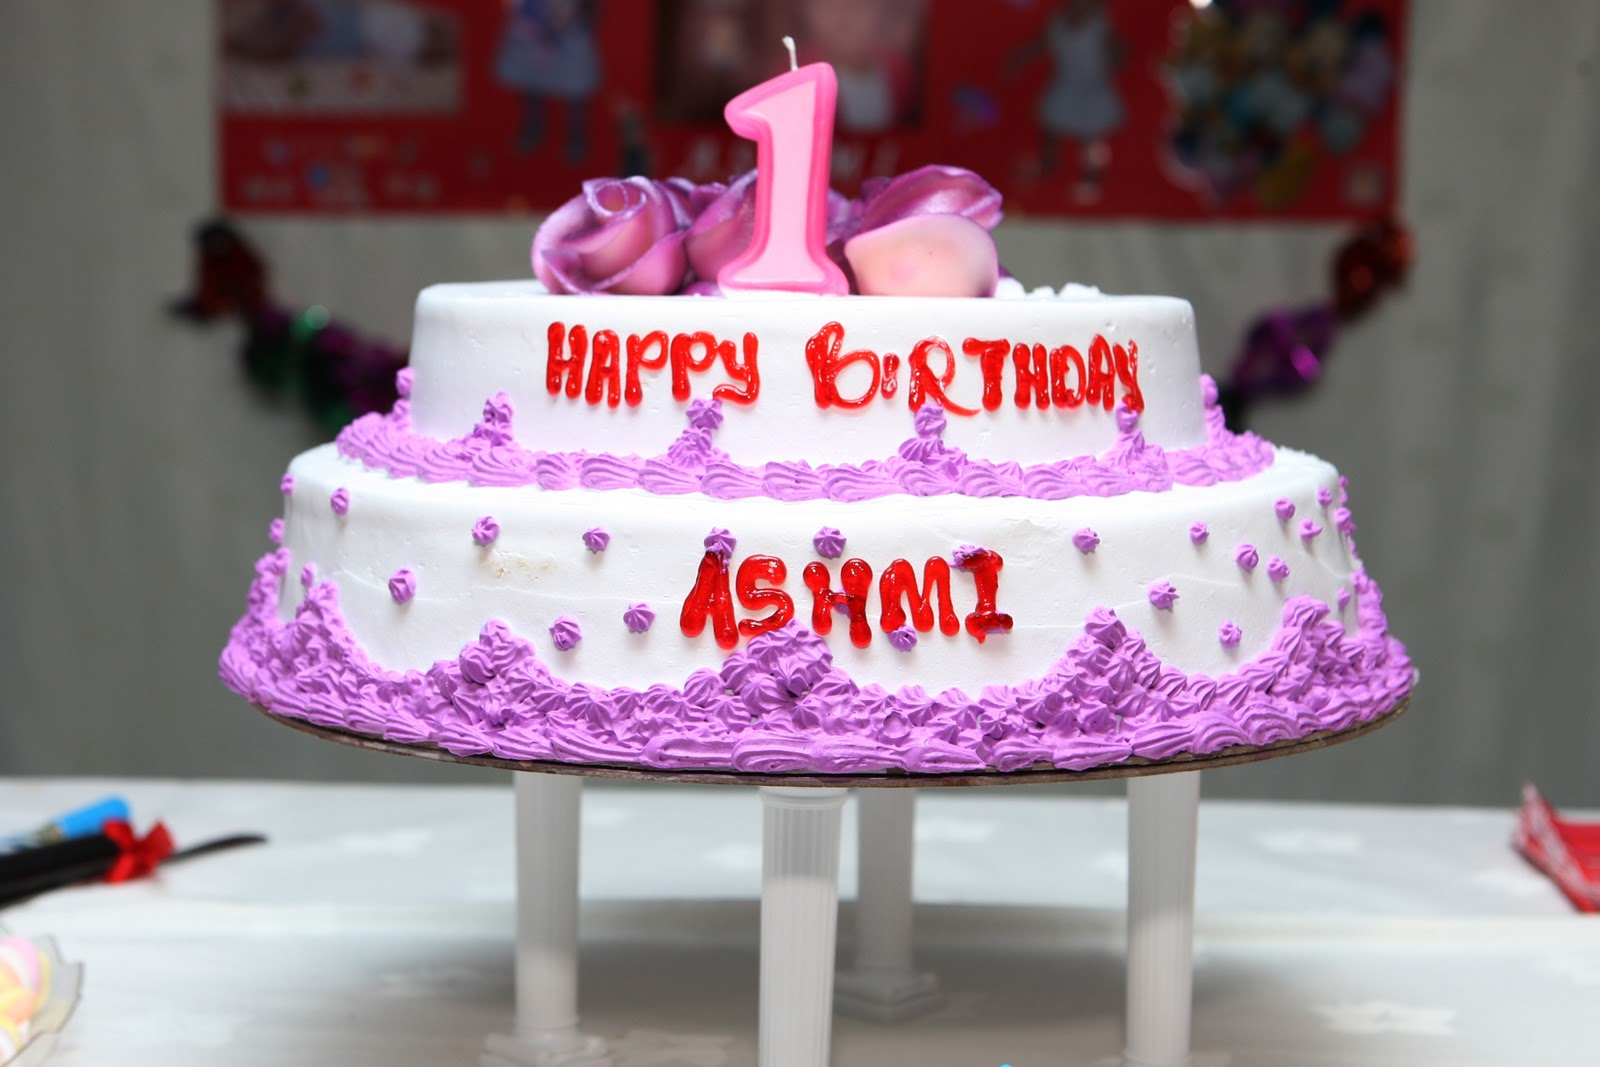 Amazing Wallpaper Name Birthday - Birthday-Cake-Images-Download-Wallpapers-028  You Should Have_773425.jpg